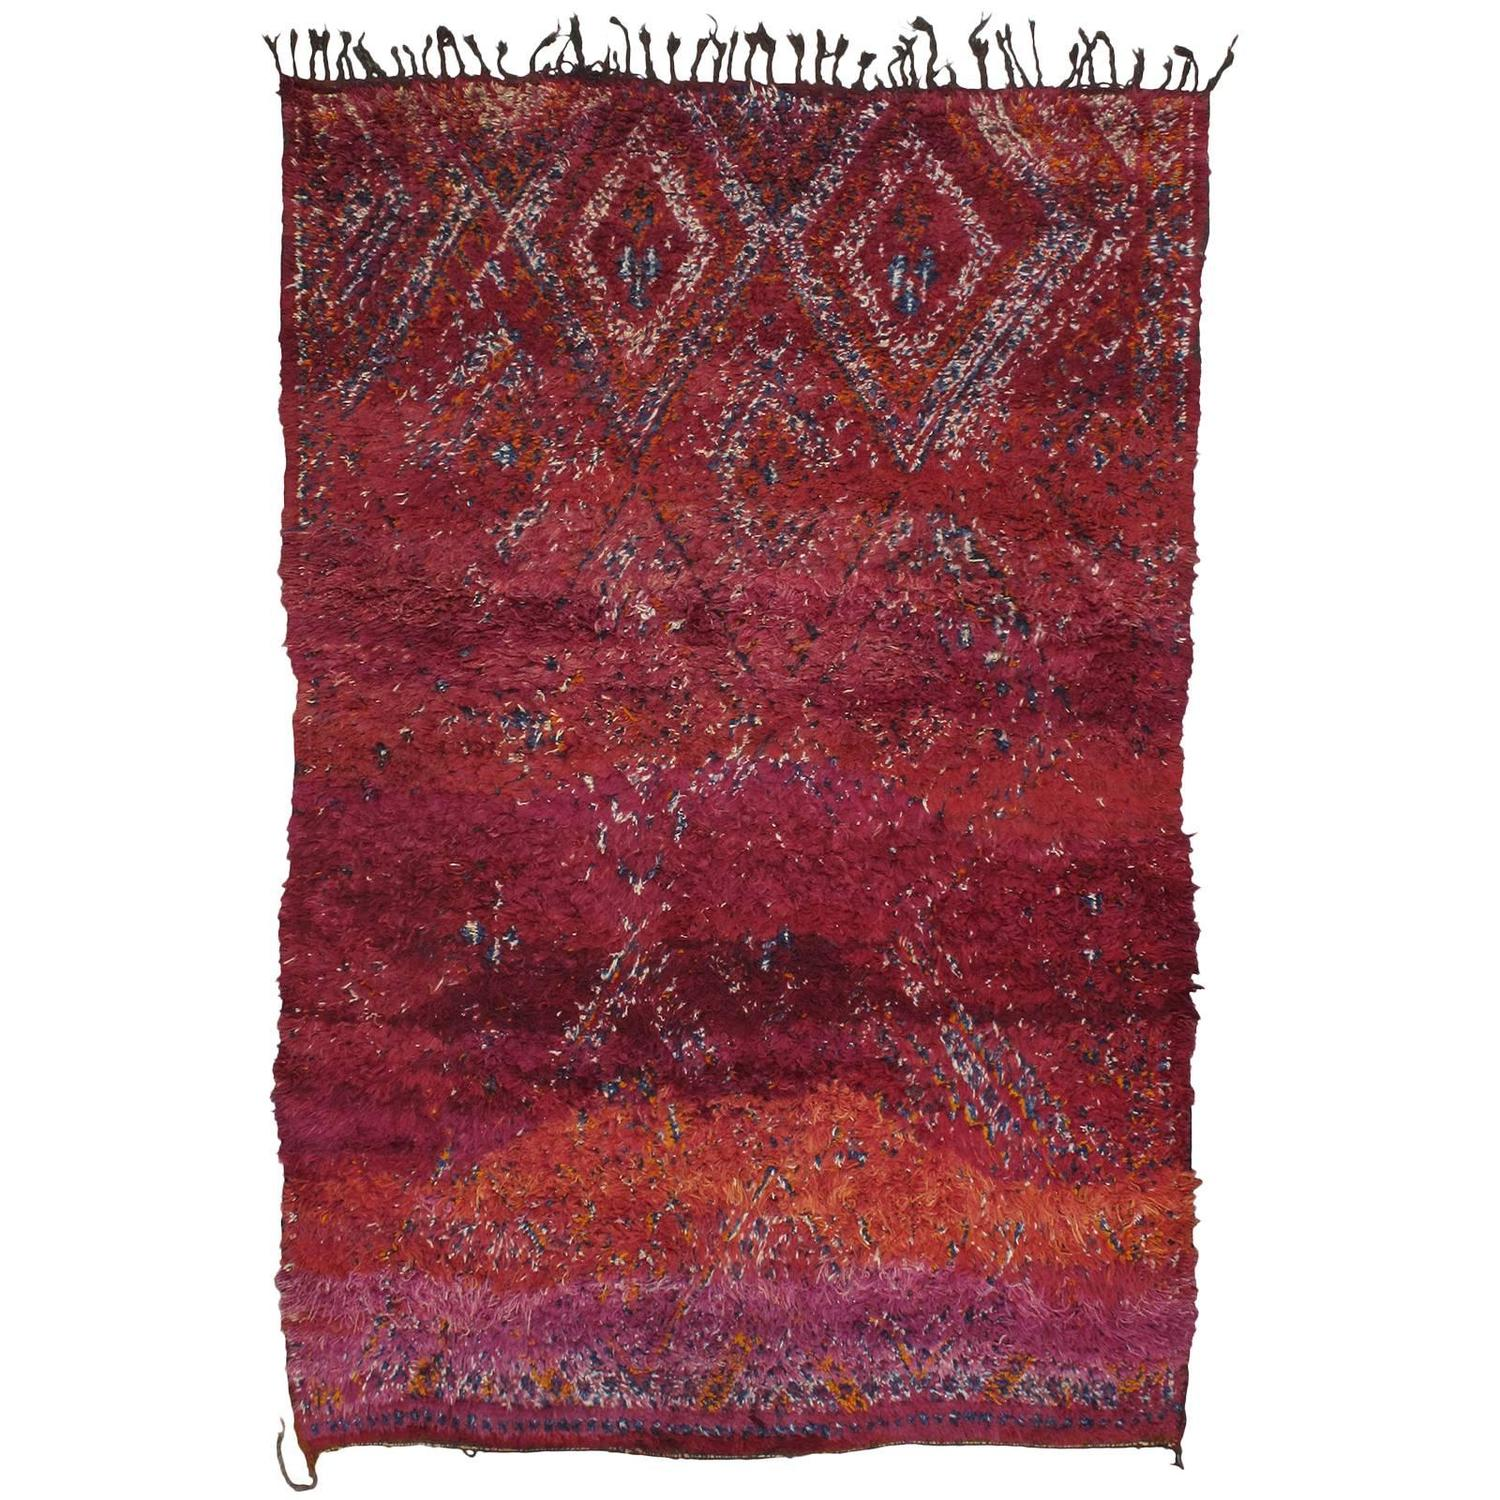 Moroccan Boucherouite Rug For Sale At 1stdibs: Beni Mguild Moroccan Berber Rug For Sale At 1stdibs